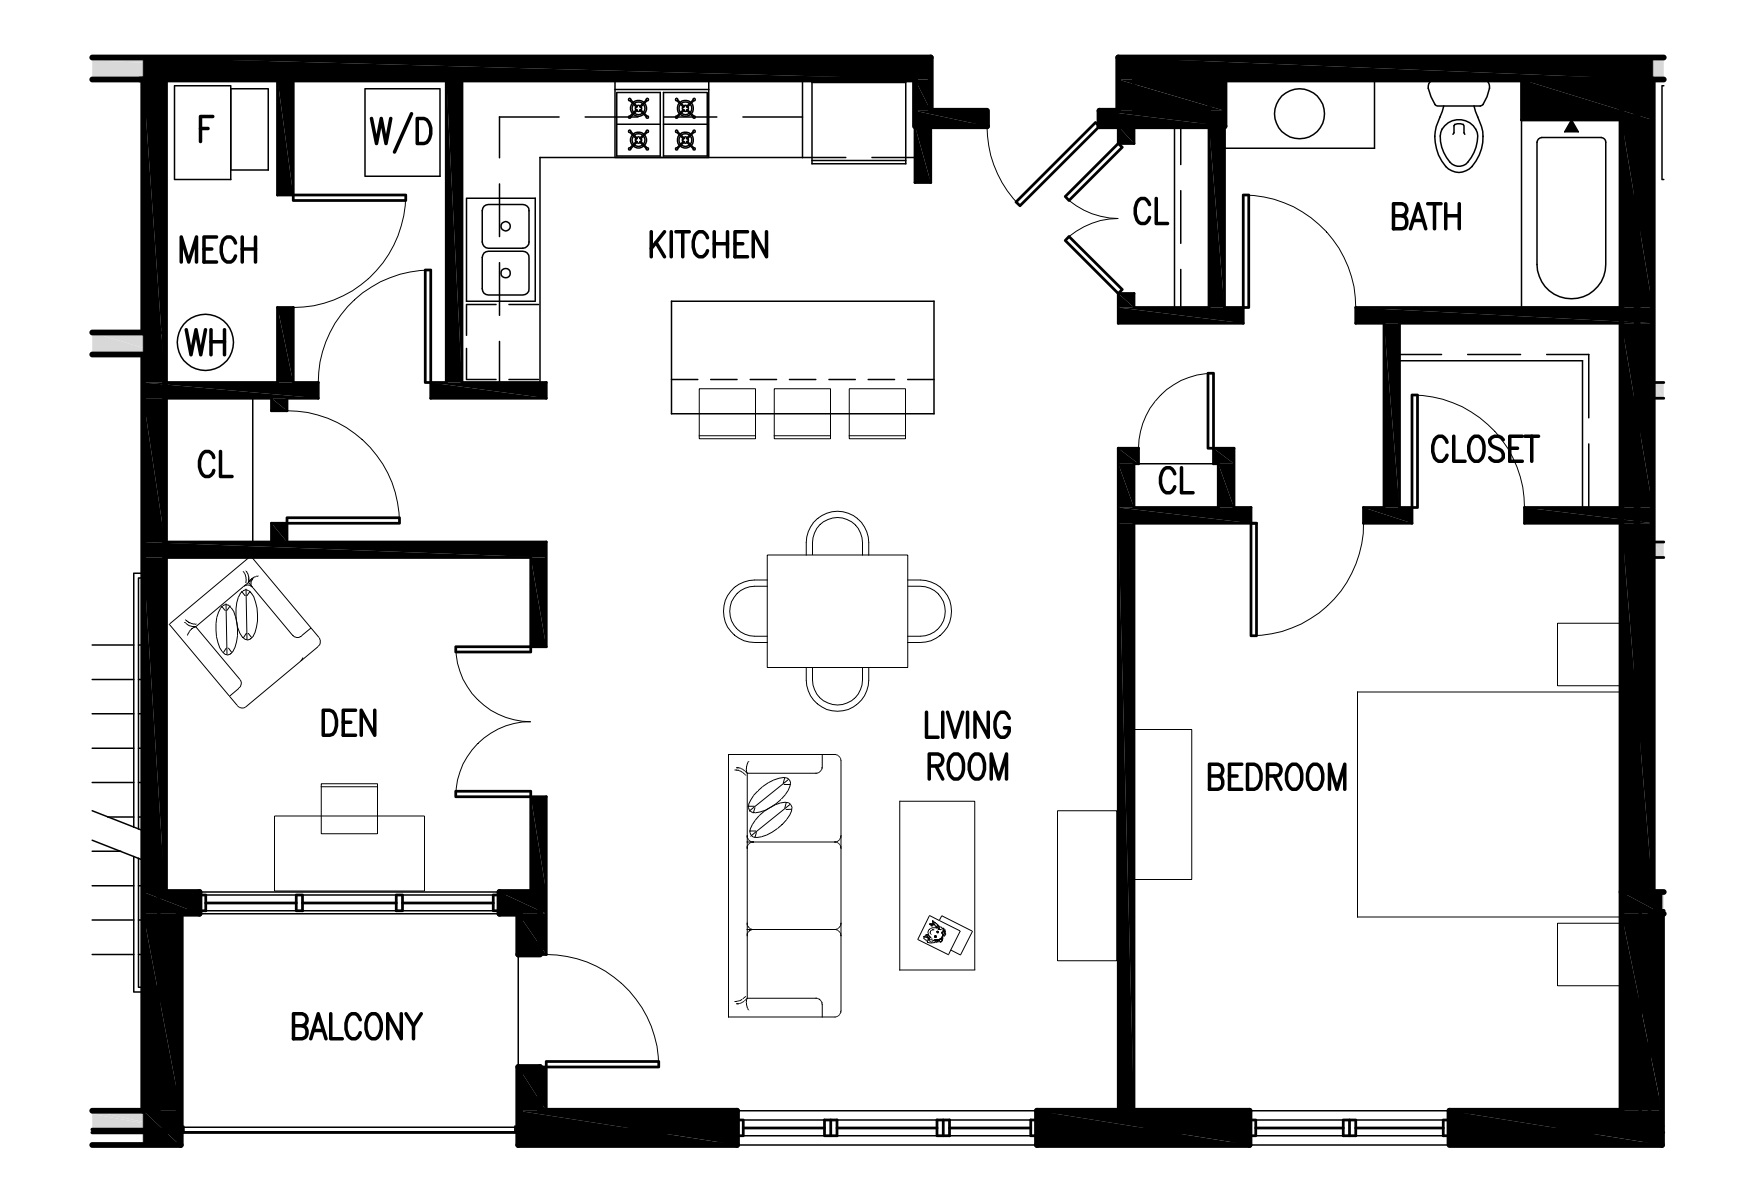 Unit B's have 1 bedroom, 1 study/den and are approximately 1,000 square feet.  Rental prices start at $1,995 per month. Fully leased.